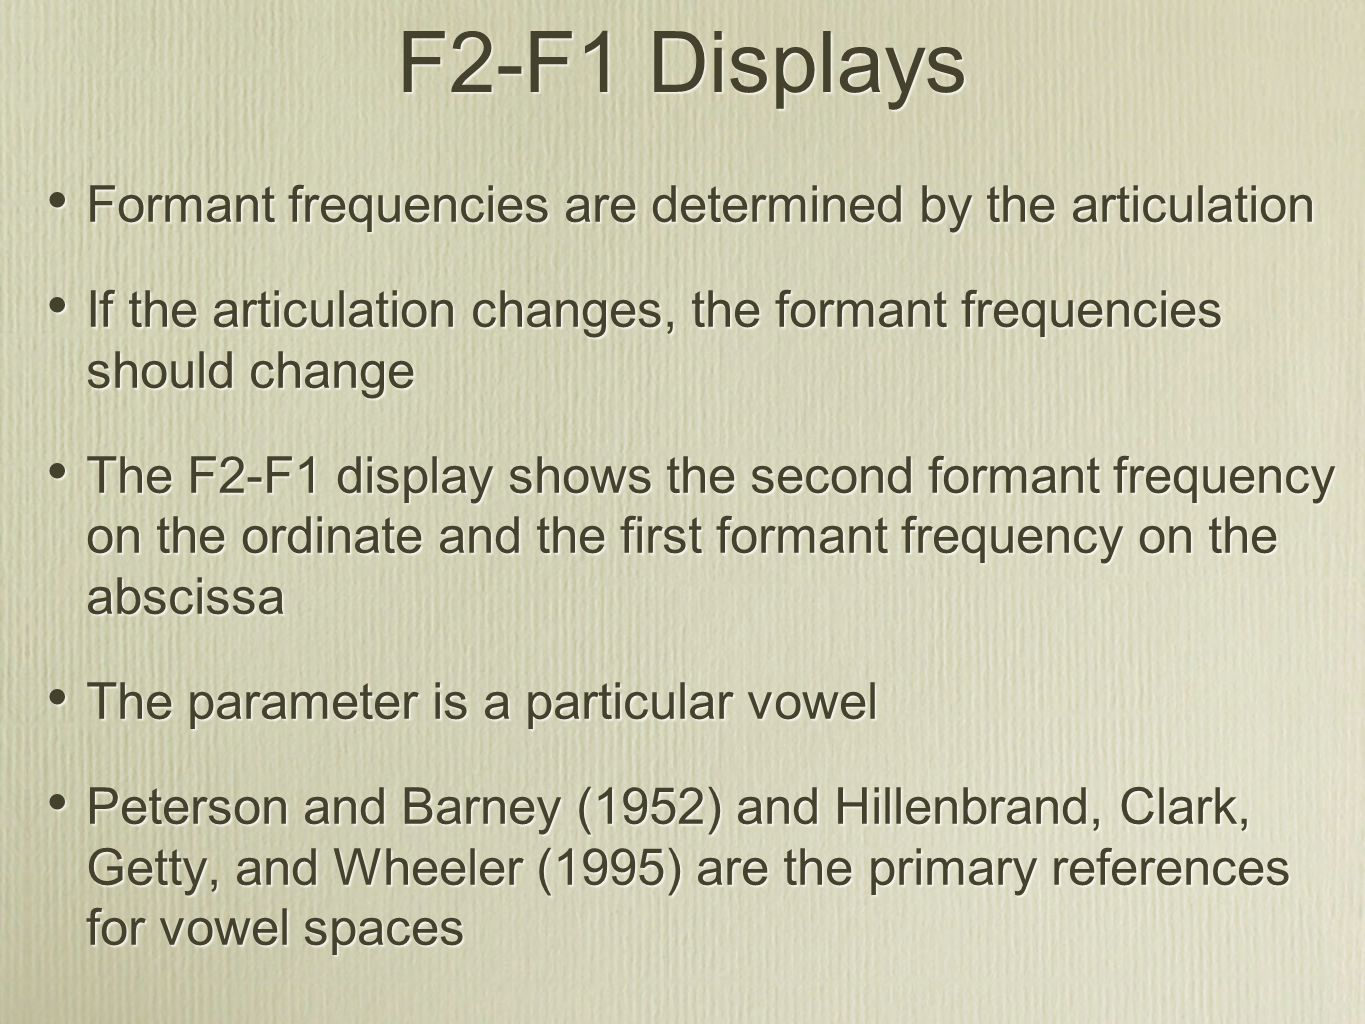 F2-F1 Displays Formant frequencies are determined by the articulation If the articulation changes, the formant frequencies should change The F2-F1 display shows the second formant frequency on the ordinate and the first formant frequency on the abscissa The parameter is a particular vowel Peterson and Barney (1952) and Hillenbrand, Clark, Getty, and Wheeler (1995) are the primary references for vowel spaces Formant frequencies are determined by the articulation If the articulation changes, the formant frequencies should change The F2-F1 display shows the second formant frequency on the ordinate and the first formant frequency on the abscissa The parameter is a particular vowel Peterson and Barney (1952) and Hillenbrand, Clark, Getty, and Wheeler (1995) are the primary references for vowel spaces